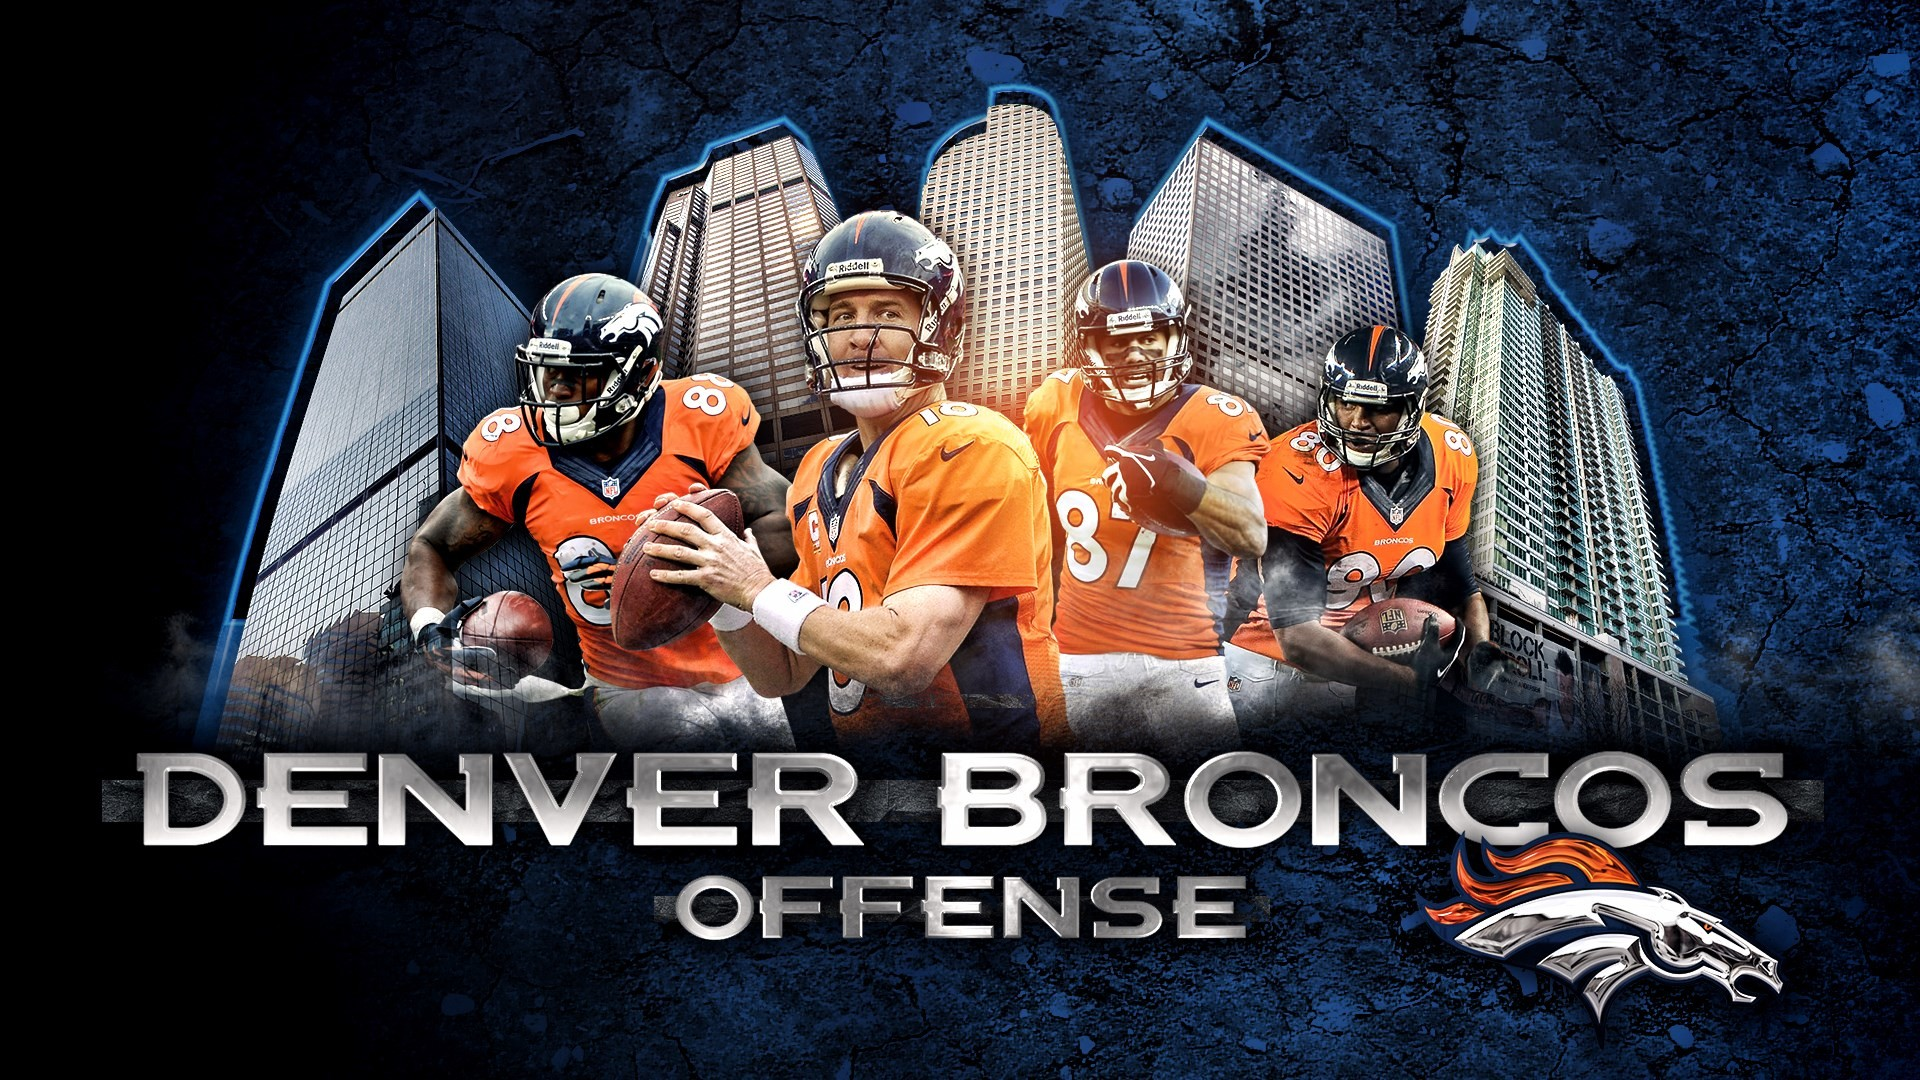 Wallpapers for Desktop: denver broncos pic – denver broncos category